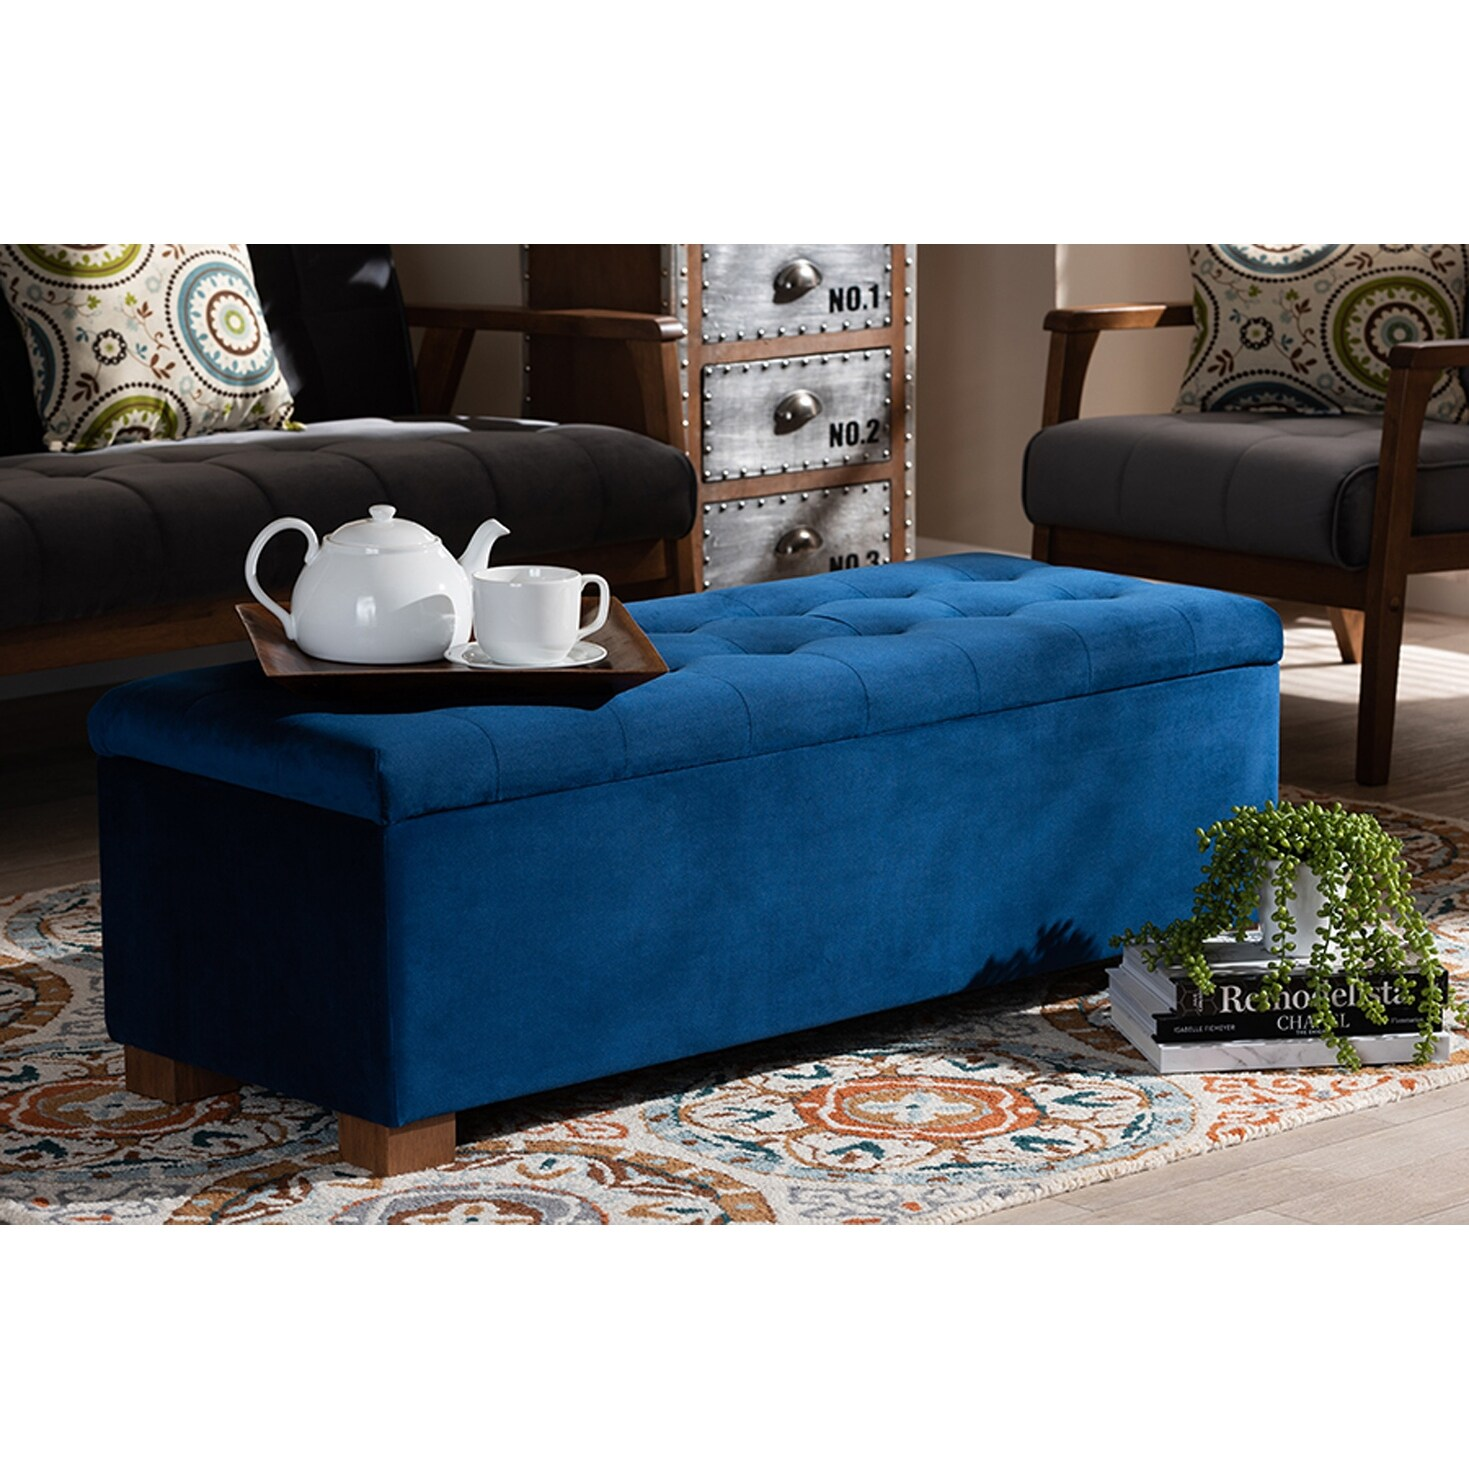 cooper navy blue velvet fabric grid tufted storage ottoman bench